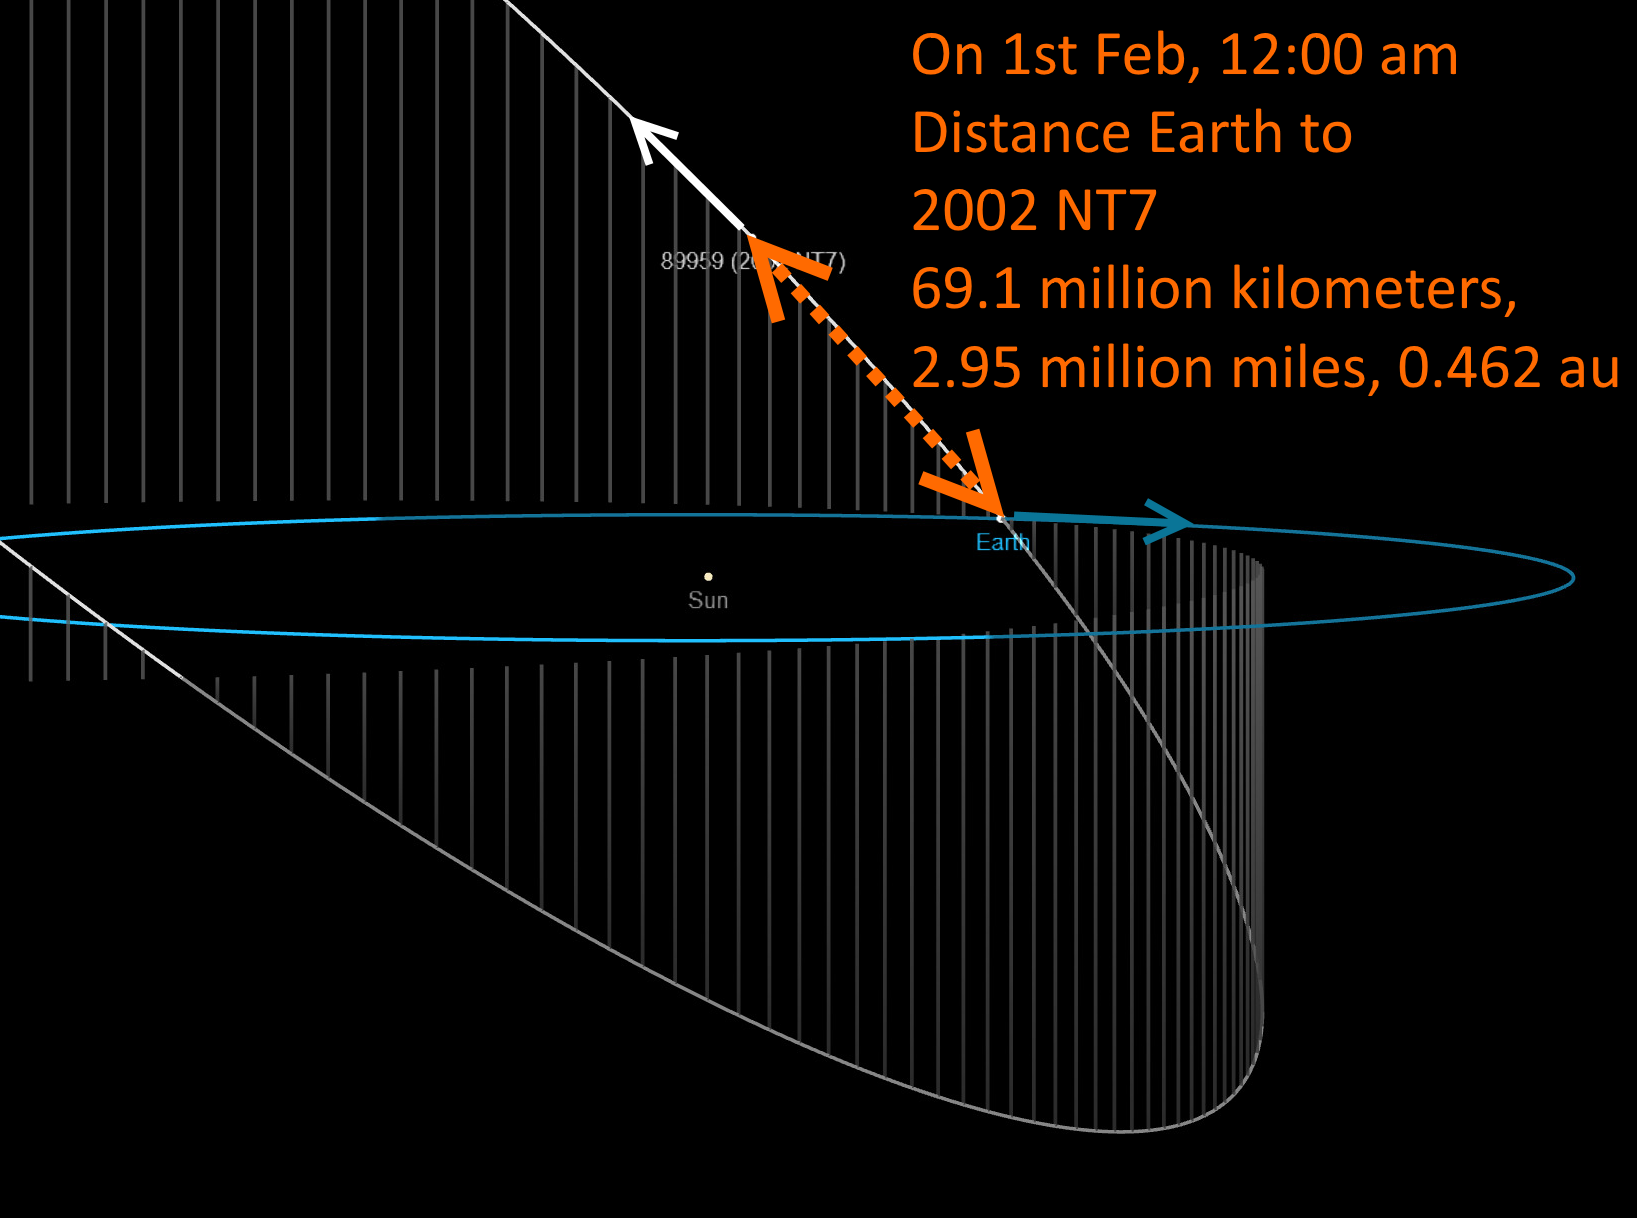 Relax, 2002 NT7 Will NOT Hit Earth On 1st February - Millions Of